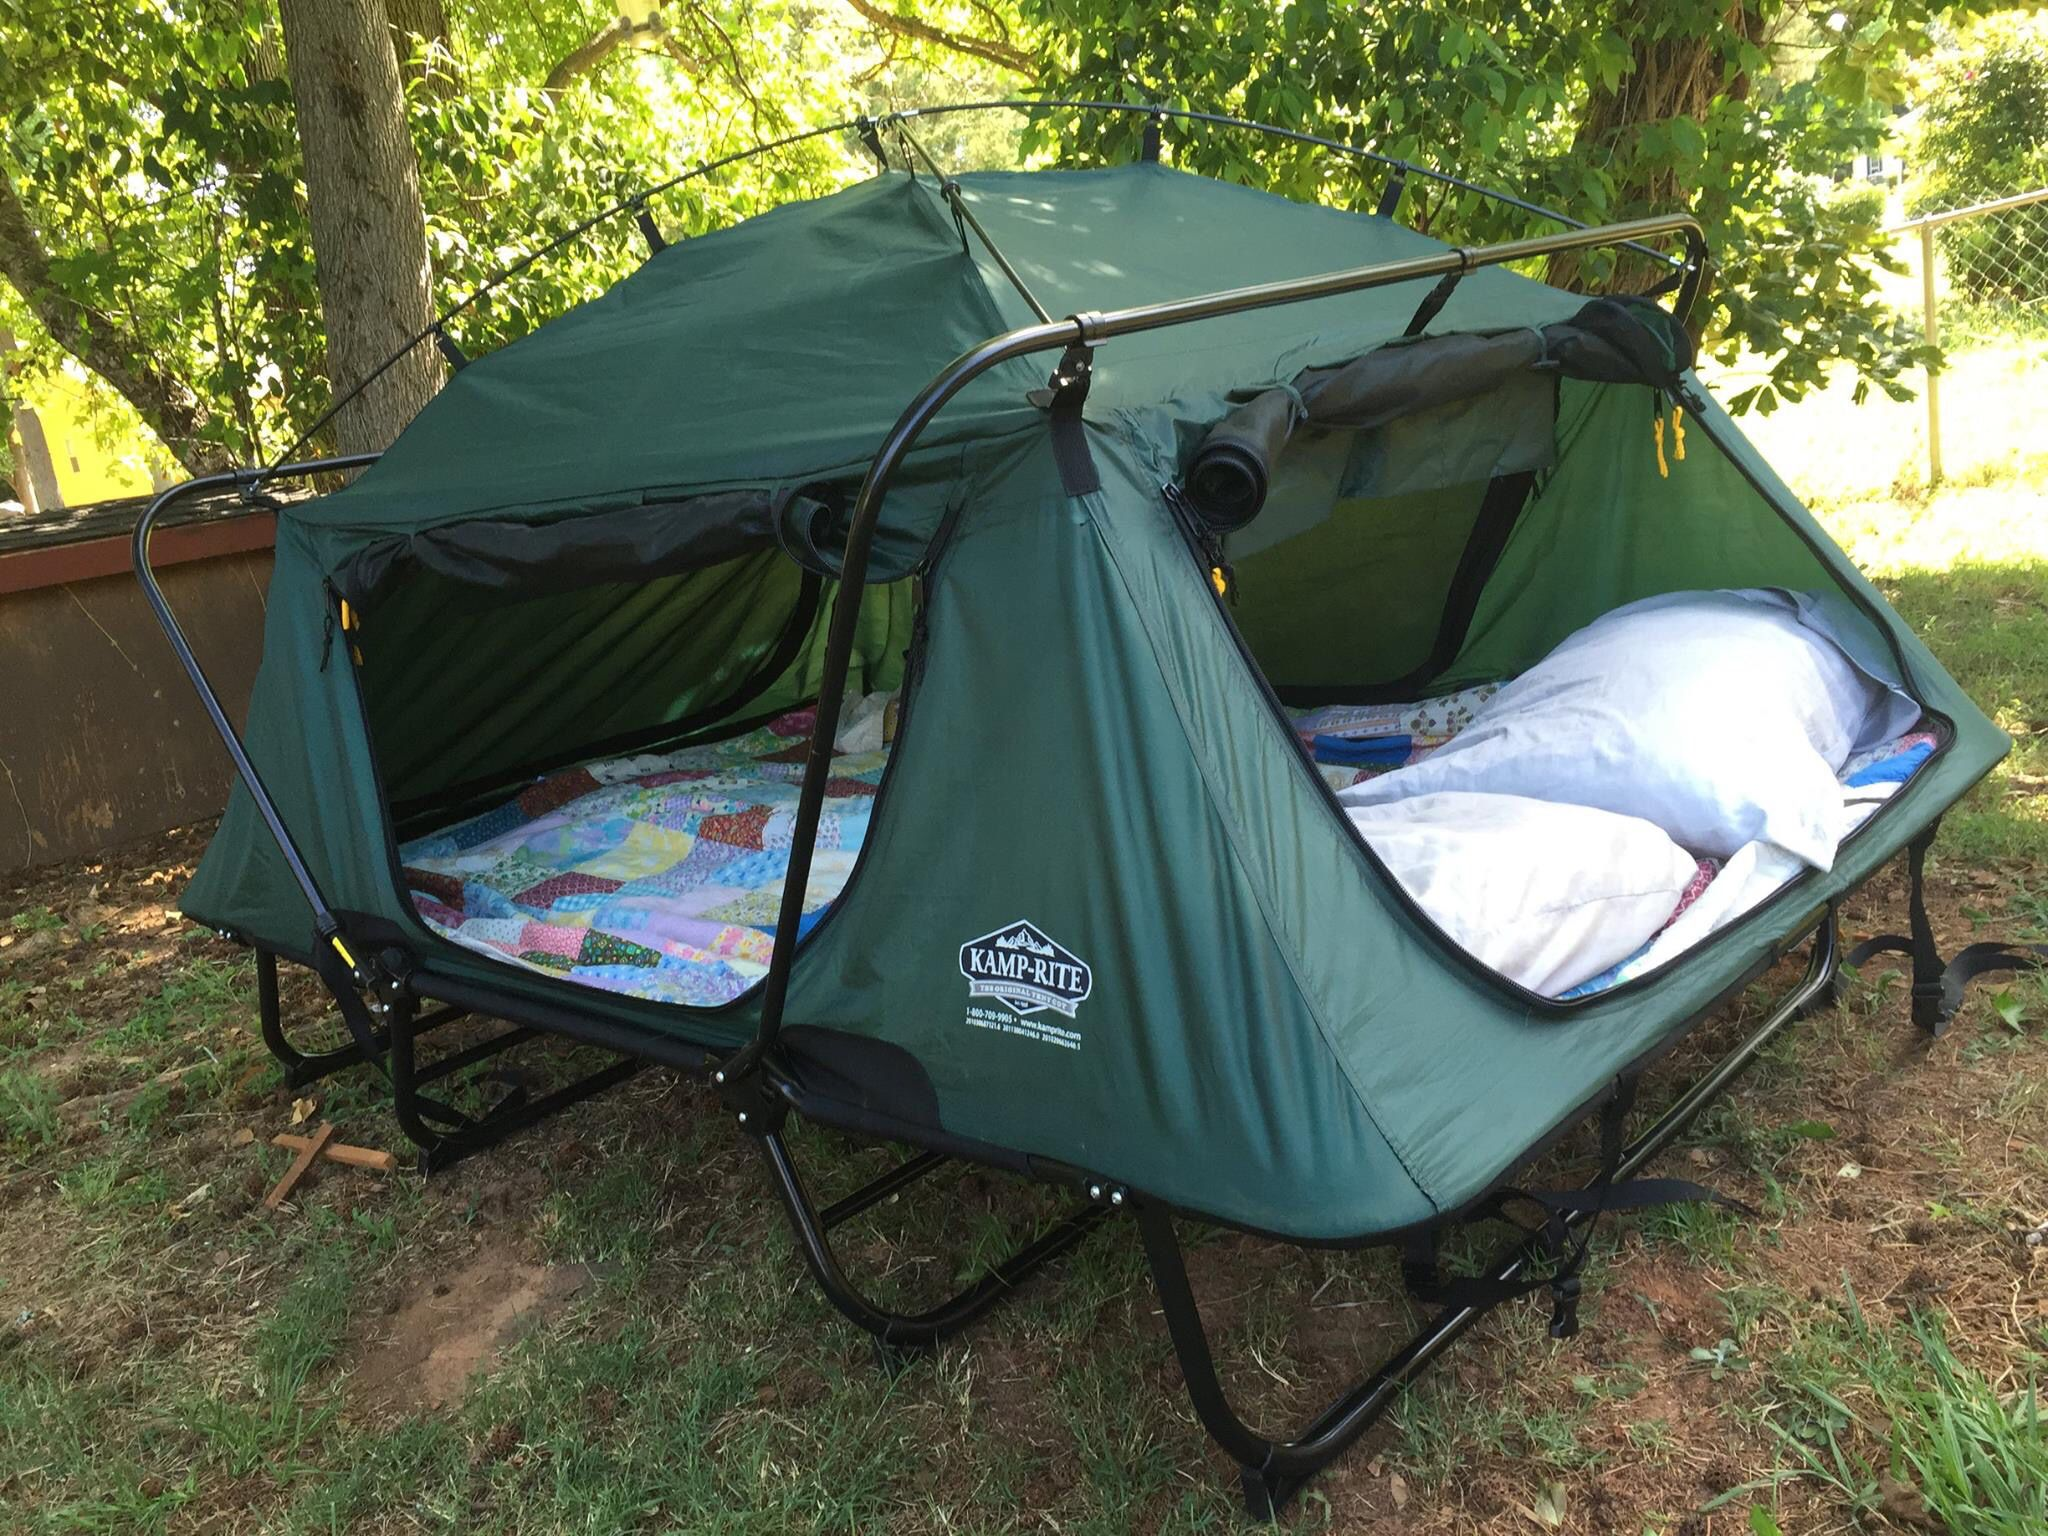 Pin by gabby barragan on weure going campinu pinterest camping